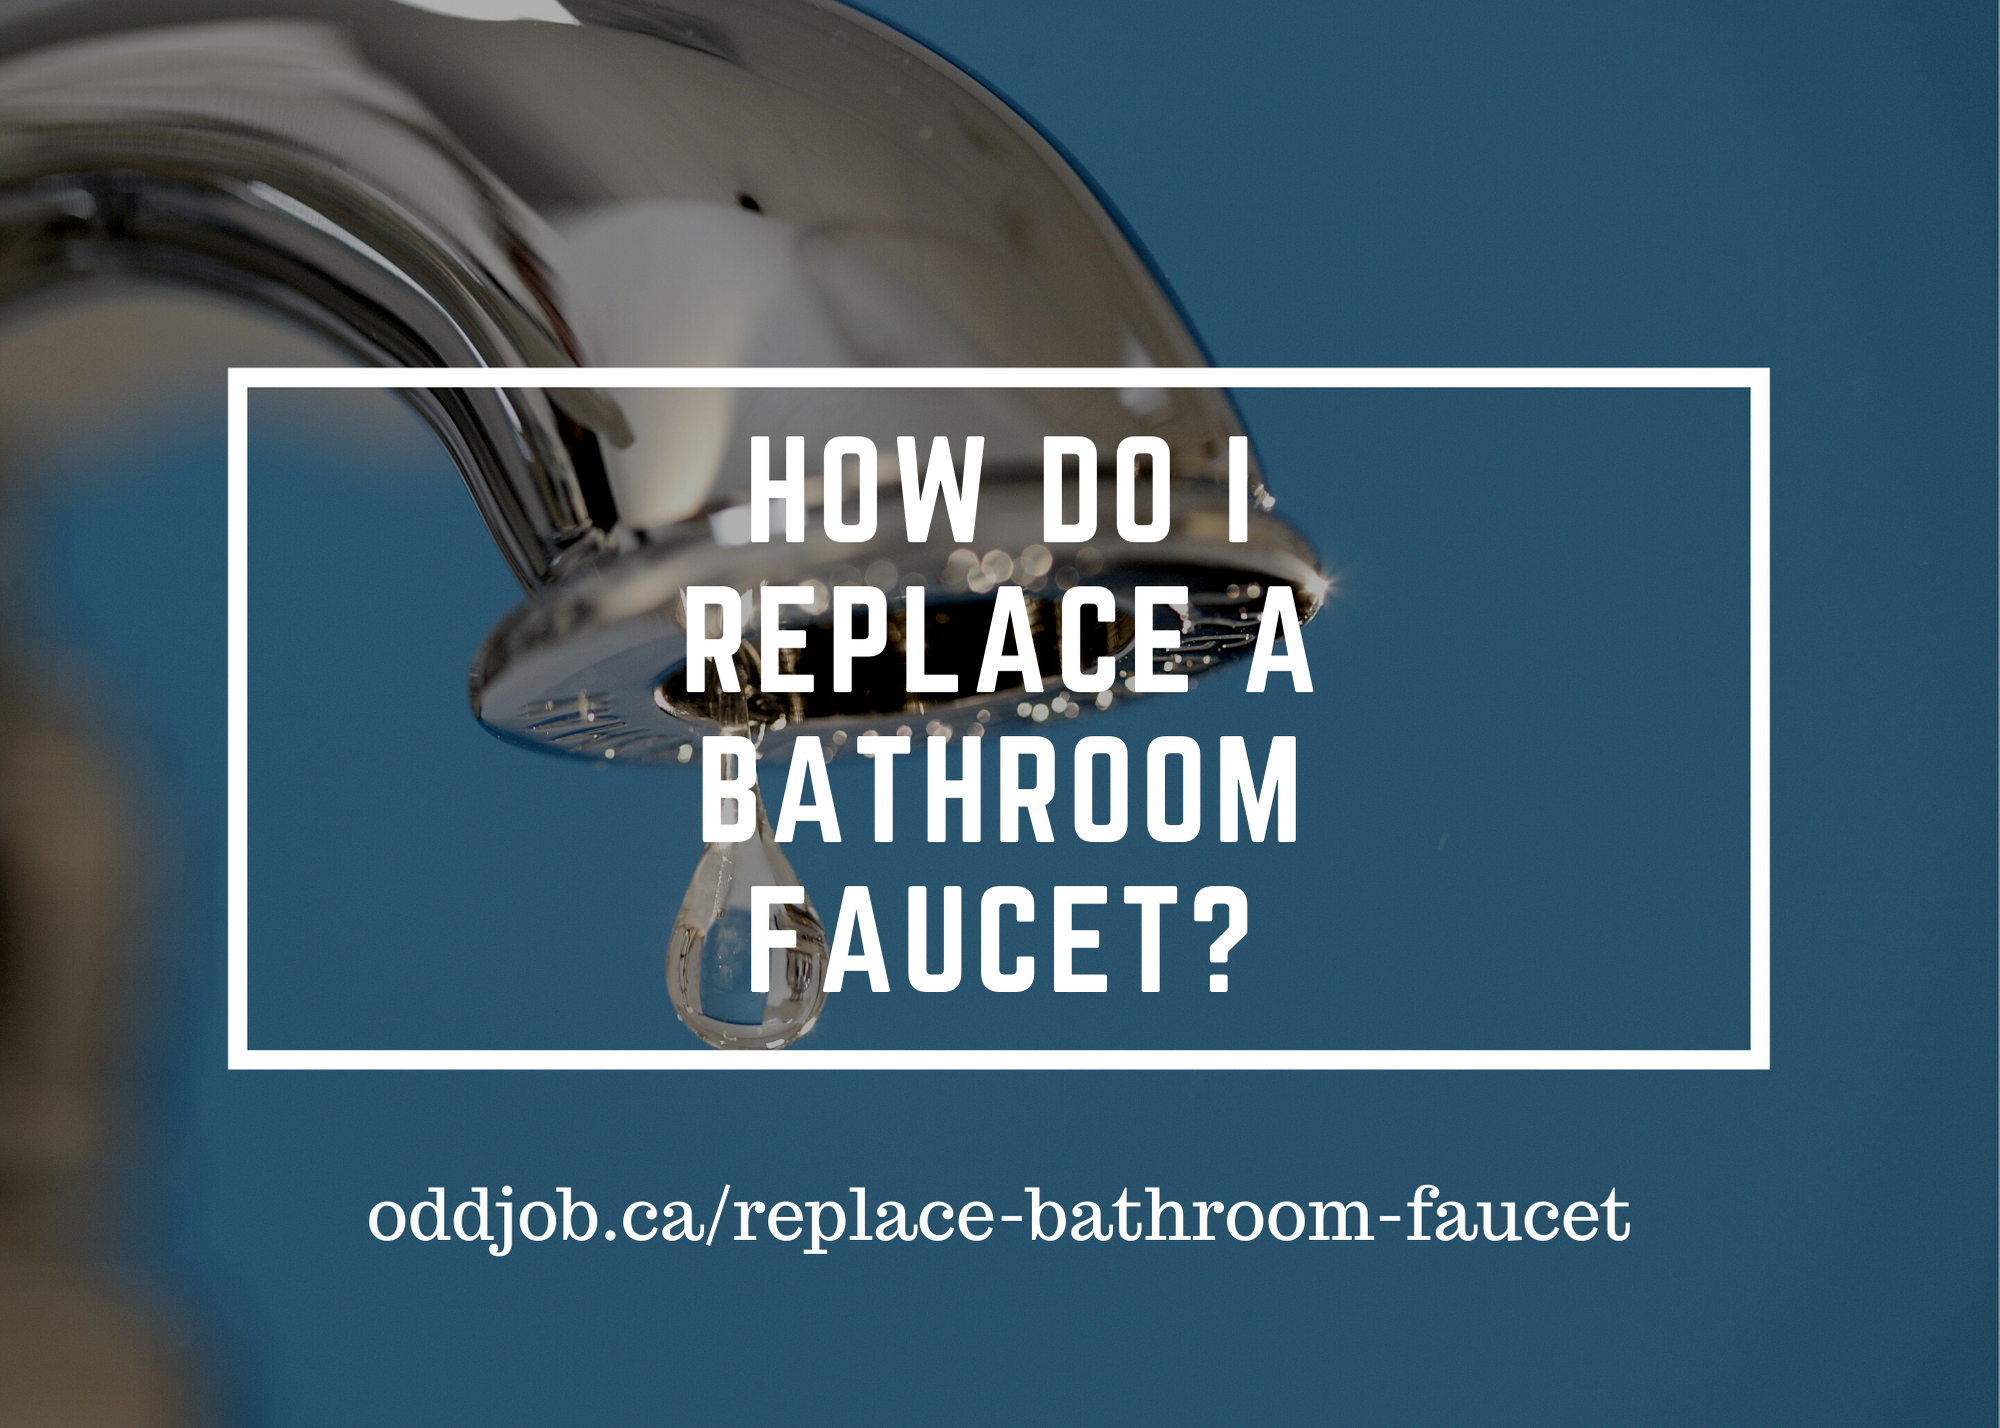 How do I replace a bathroom faucet?